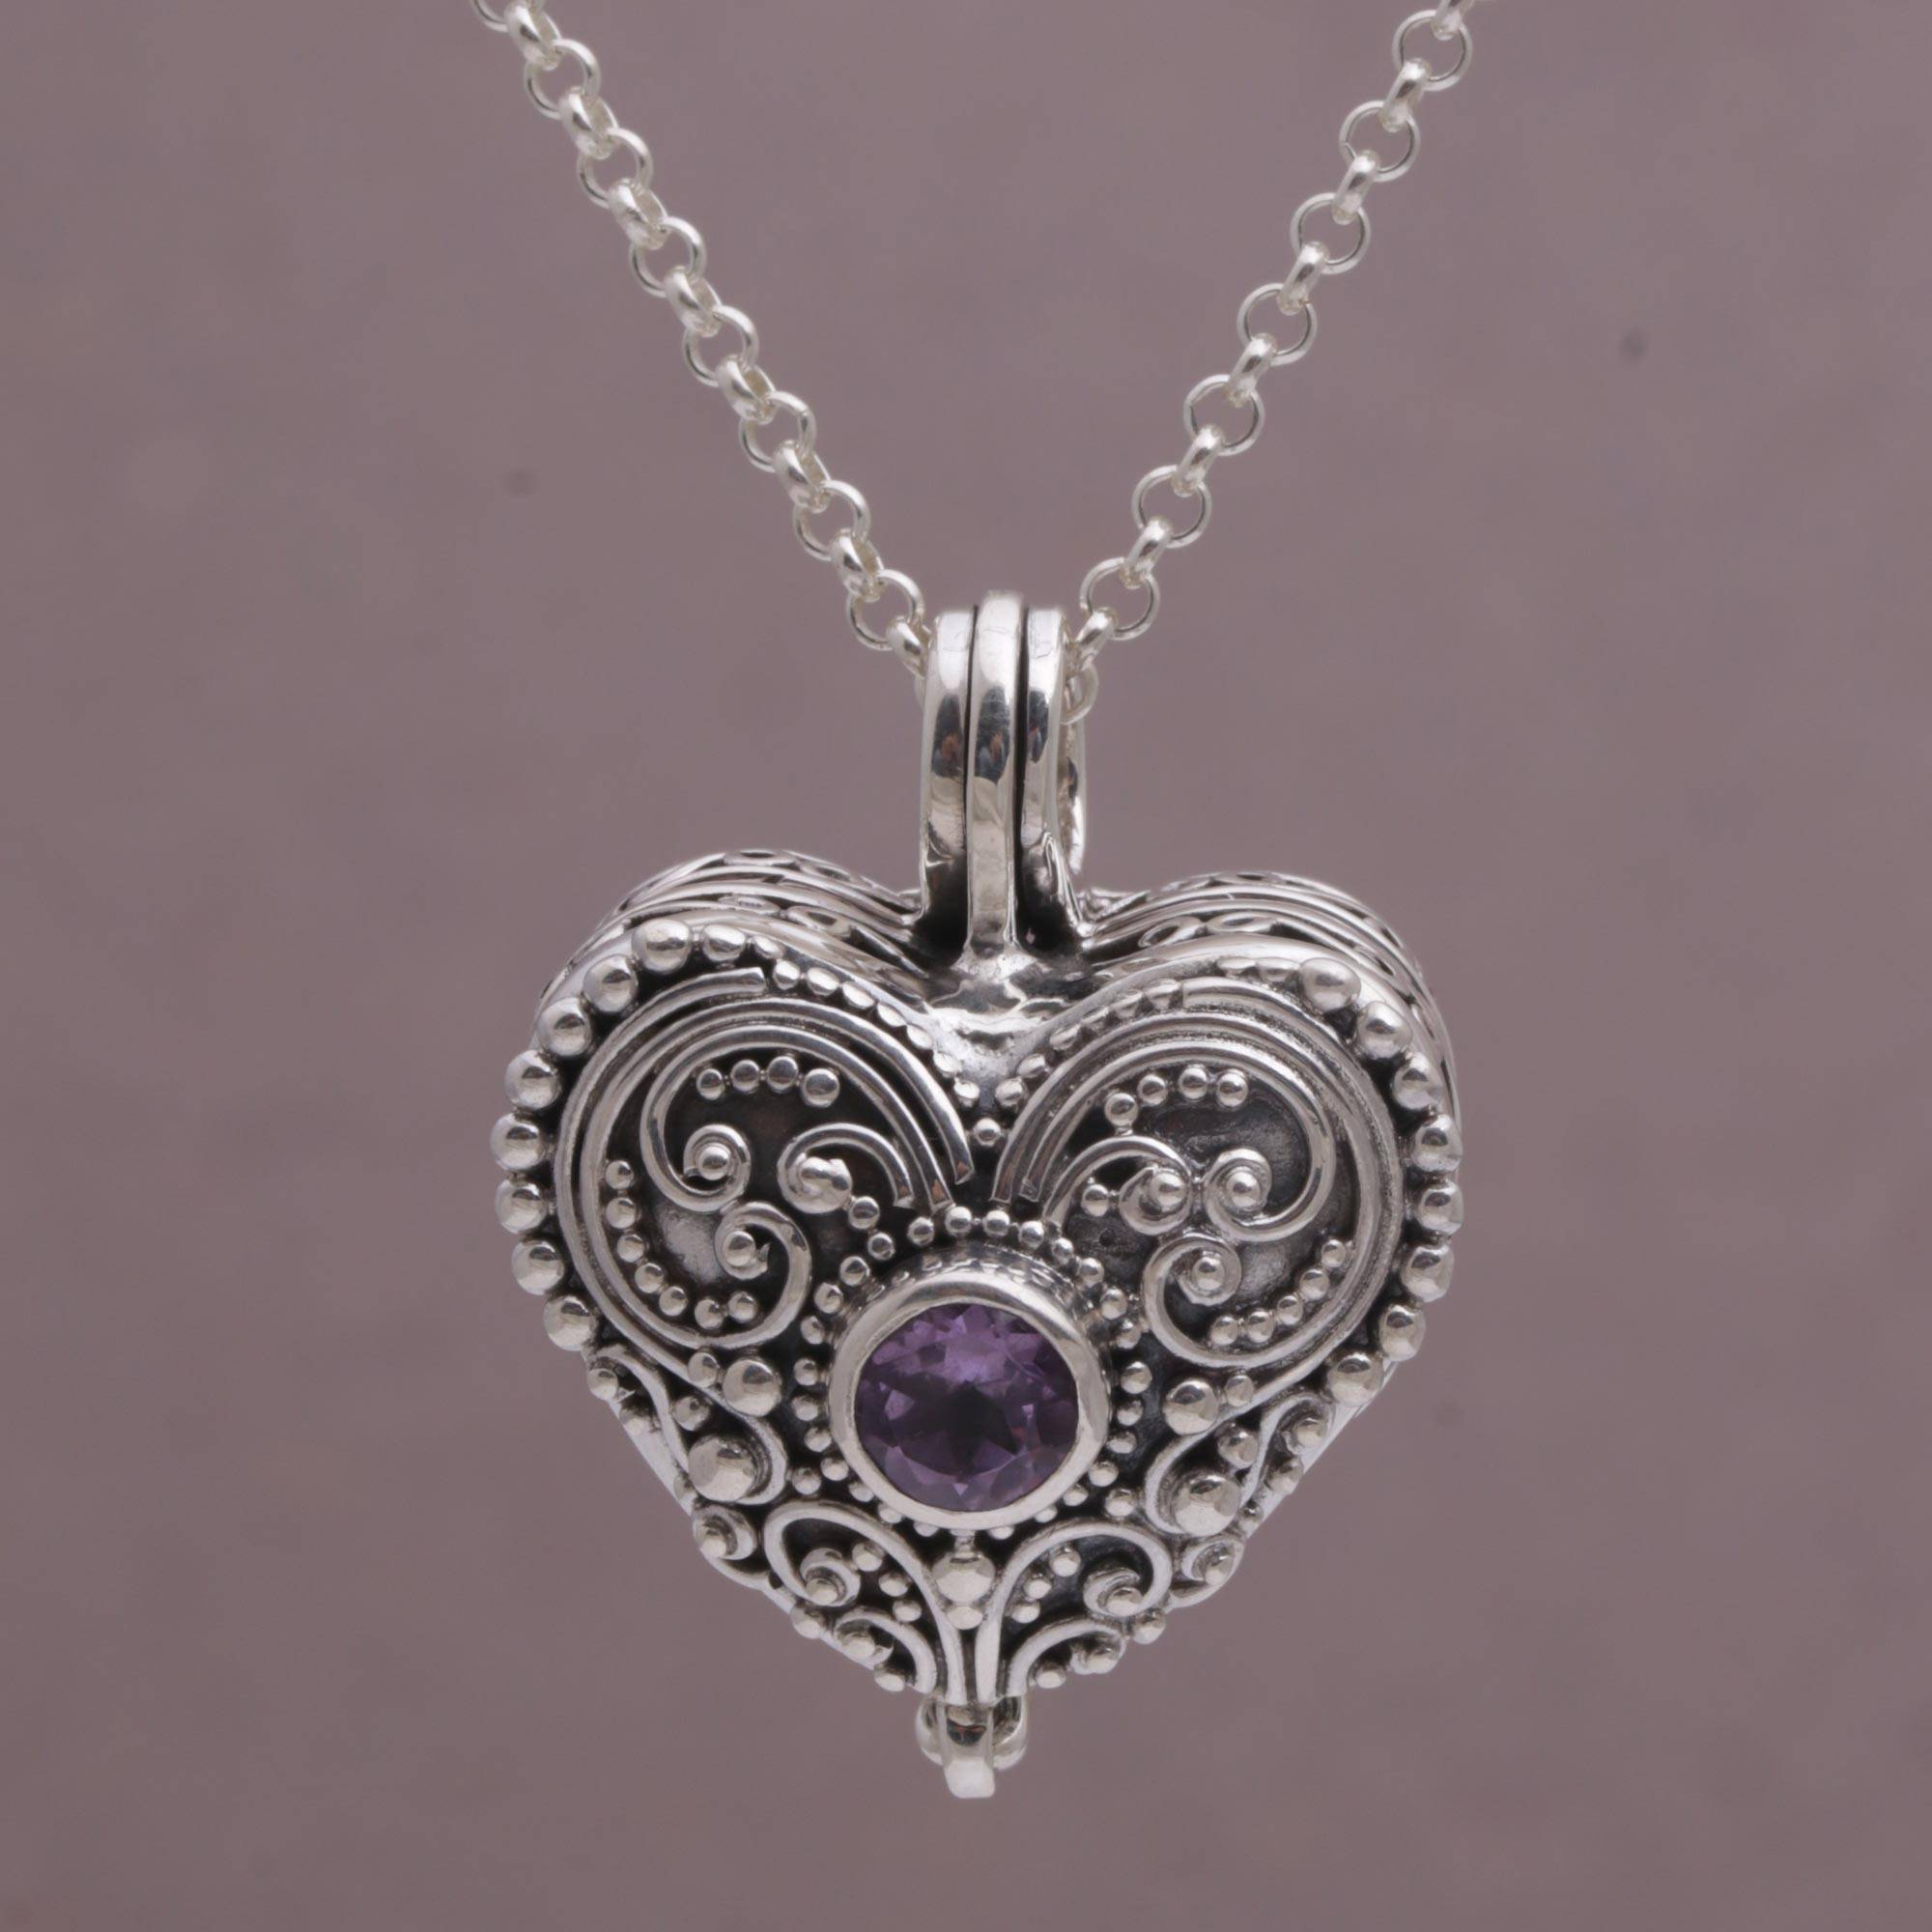 locket s claire necklace shaped pendant us floral photo heart